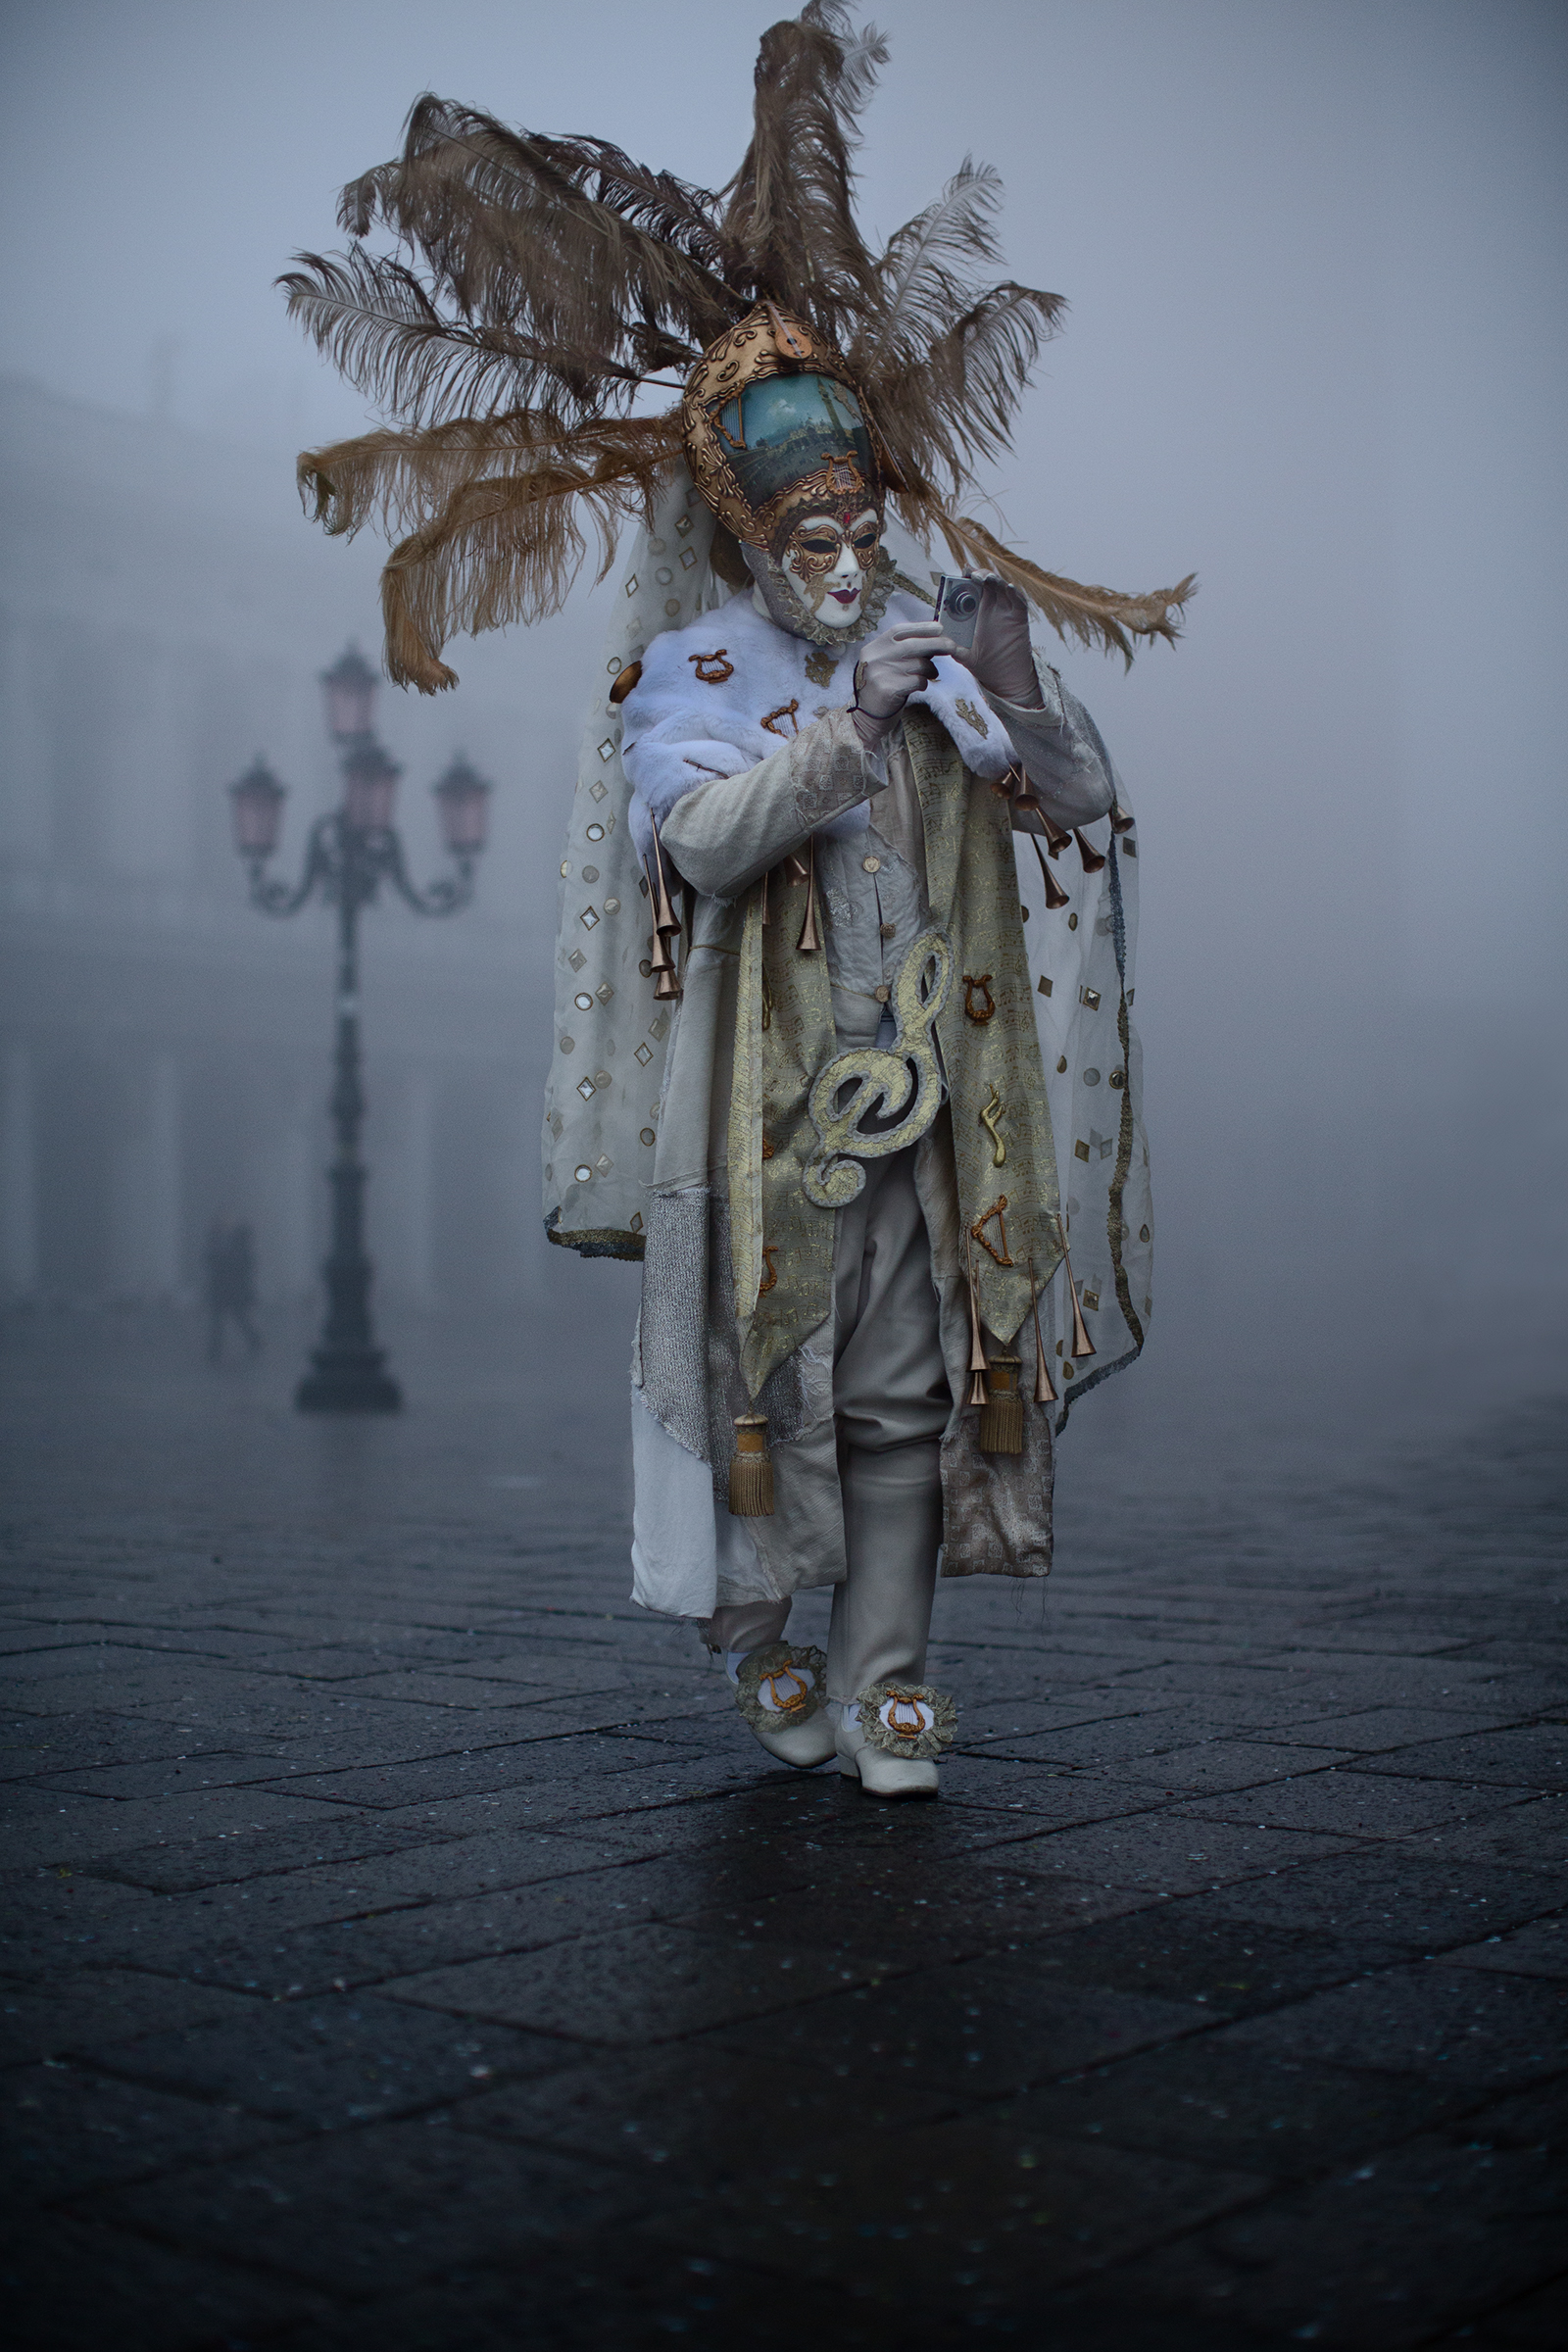 Performer with Feathers in the Fog